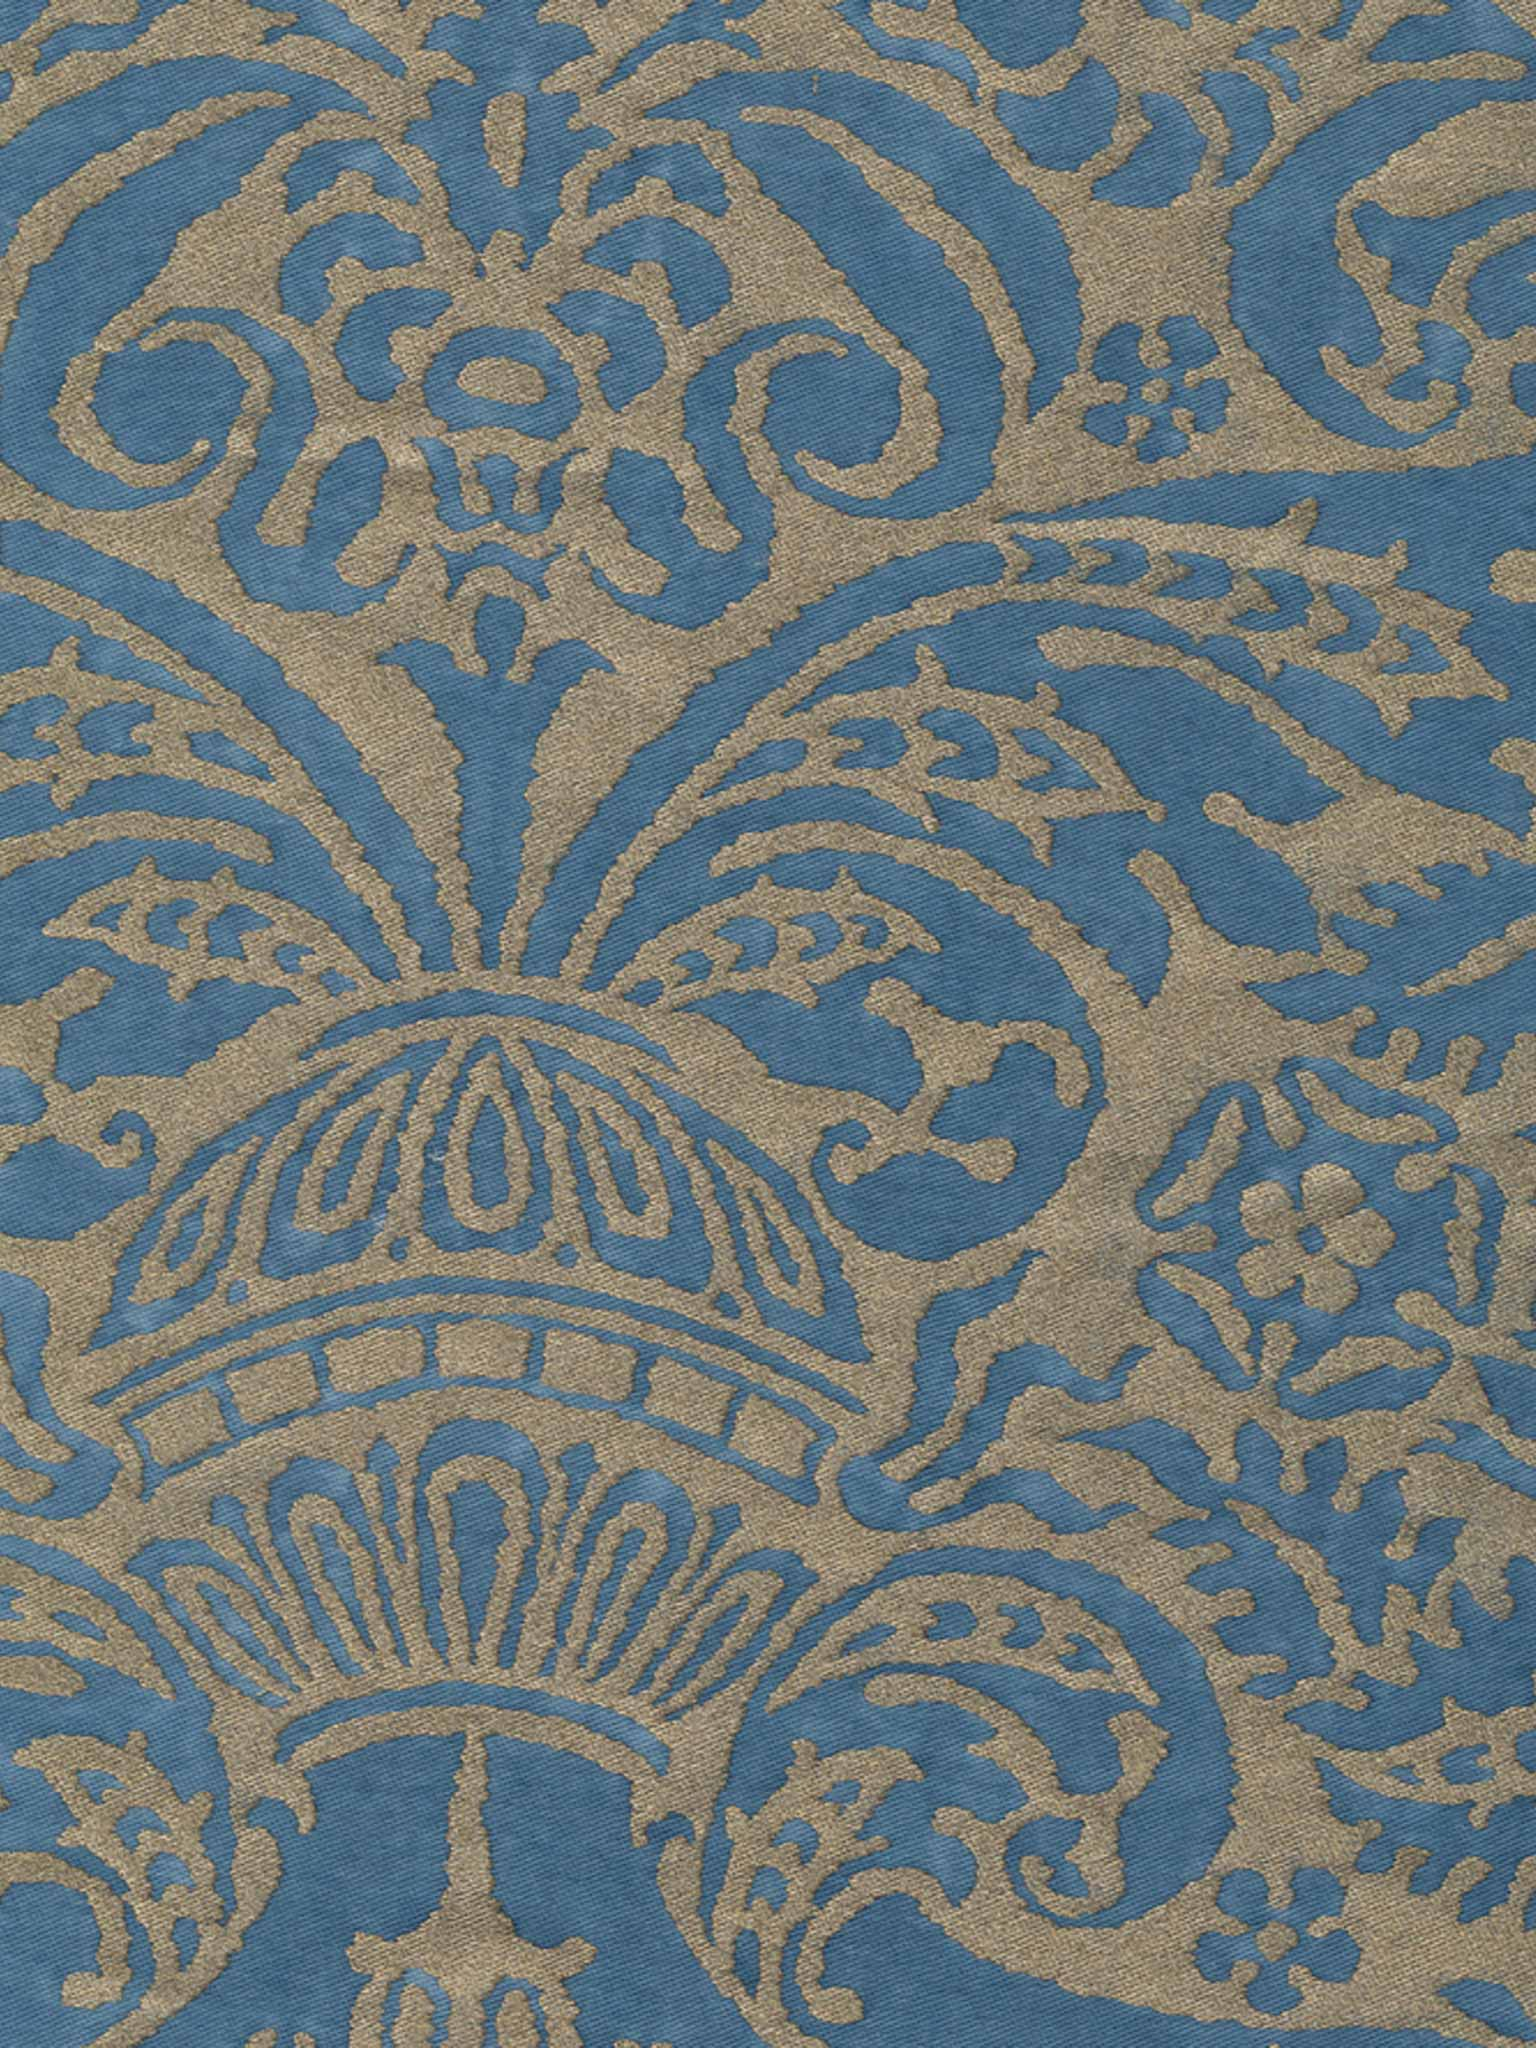 Campanelle in blue silvery gold fortuny 5318 campanelle in blue silvery gold fortuny printed cottons sisterspd